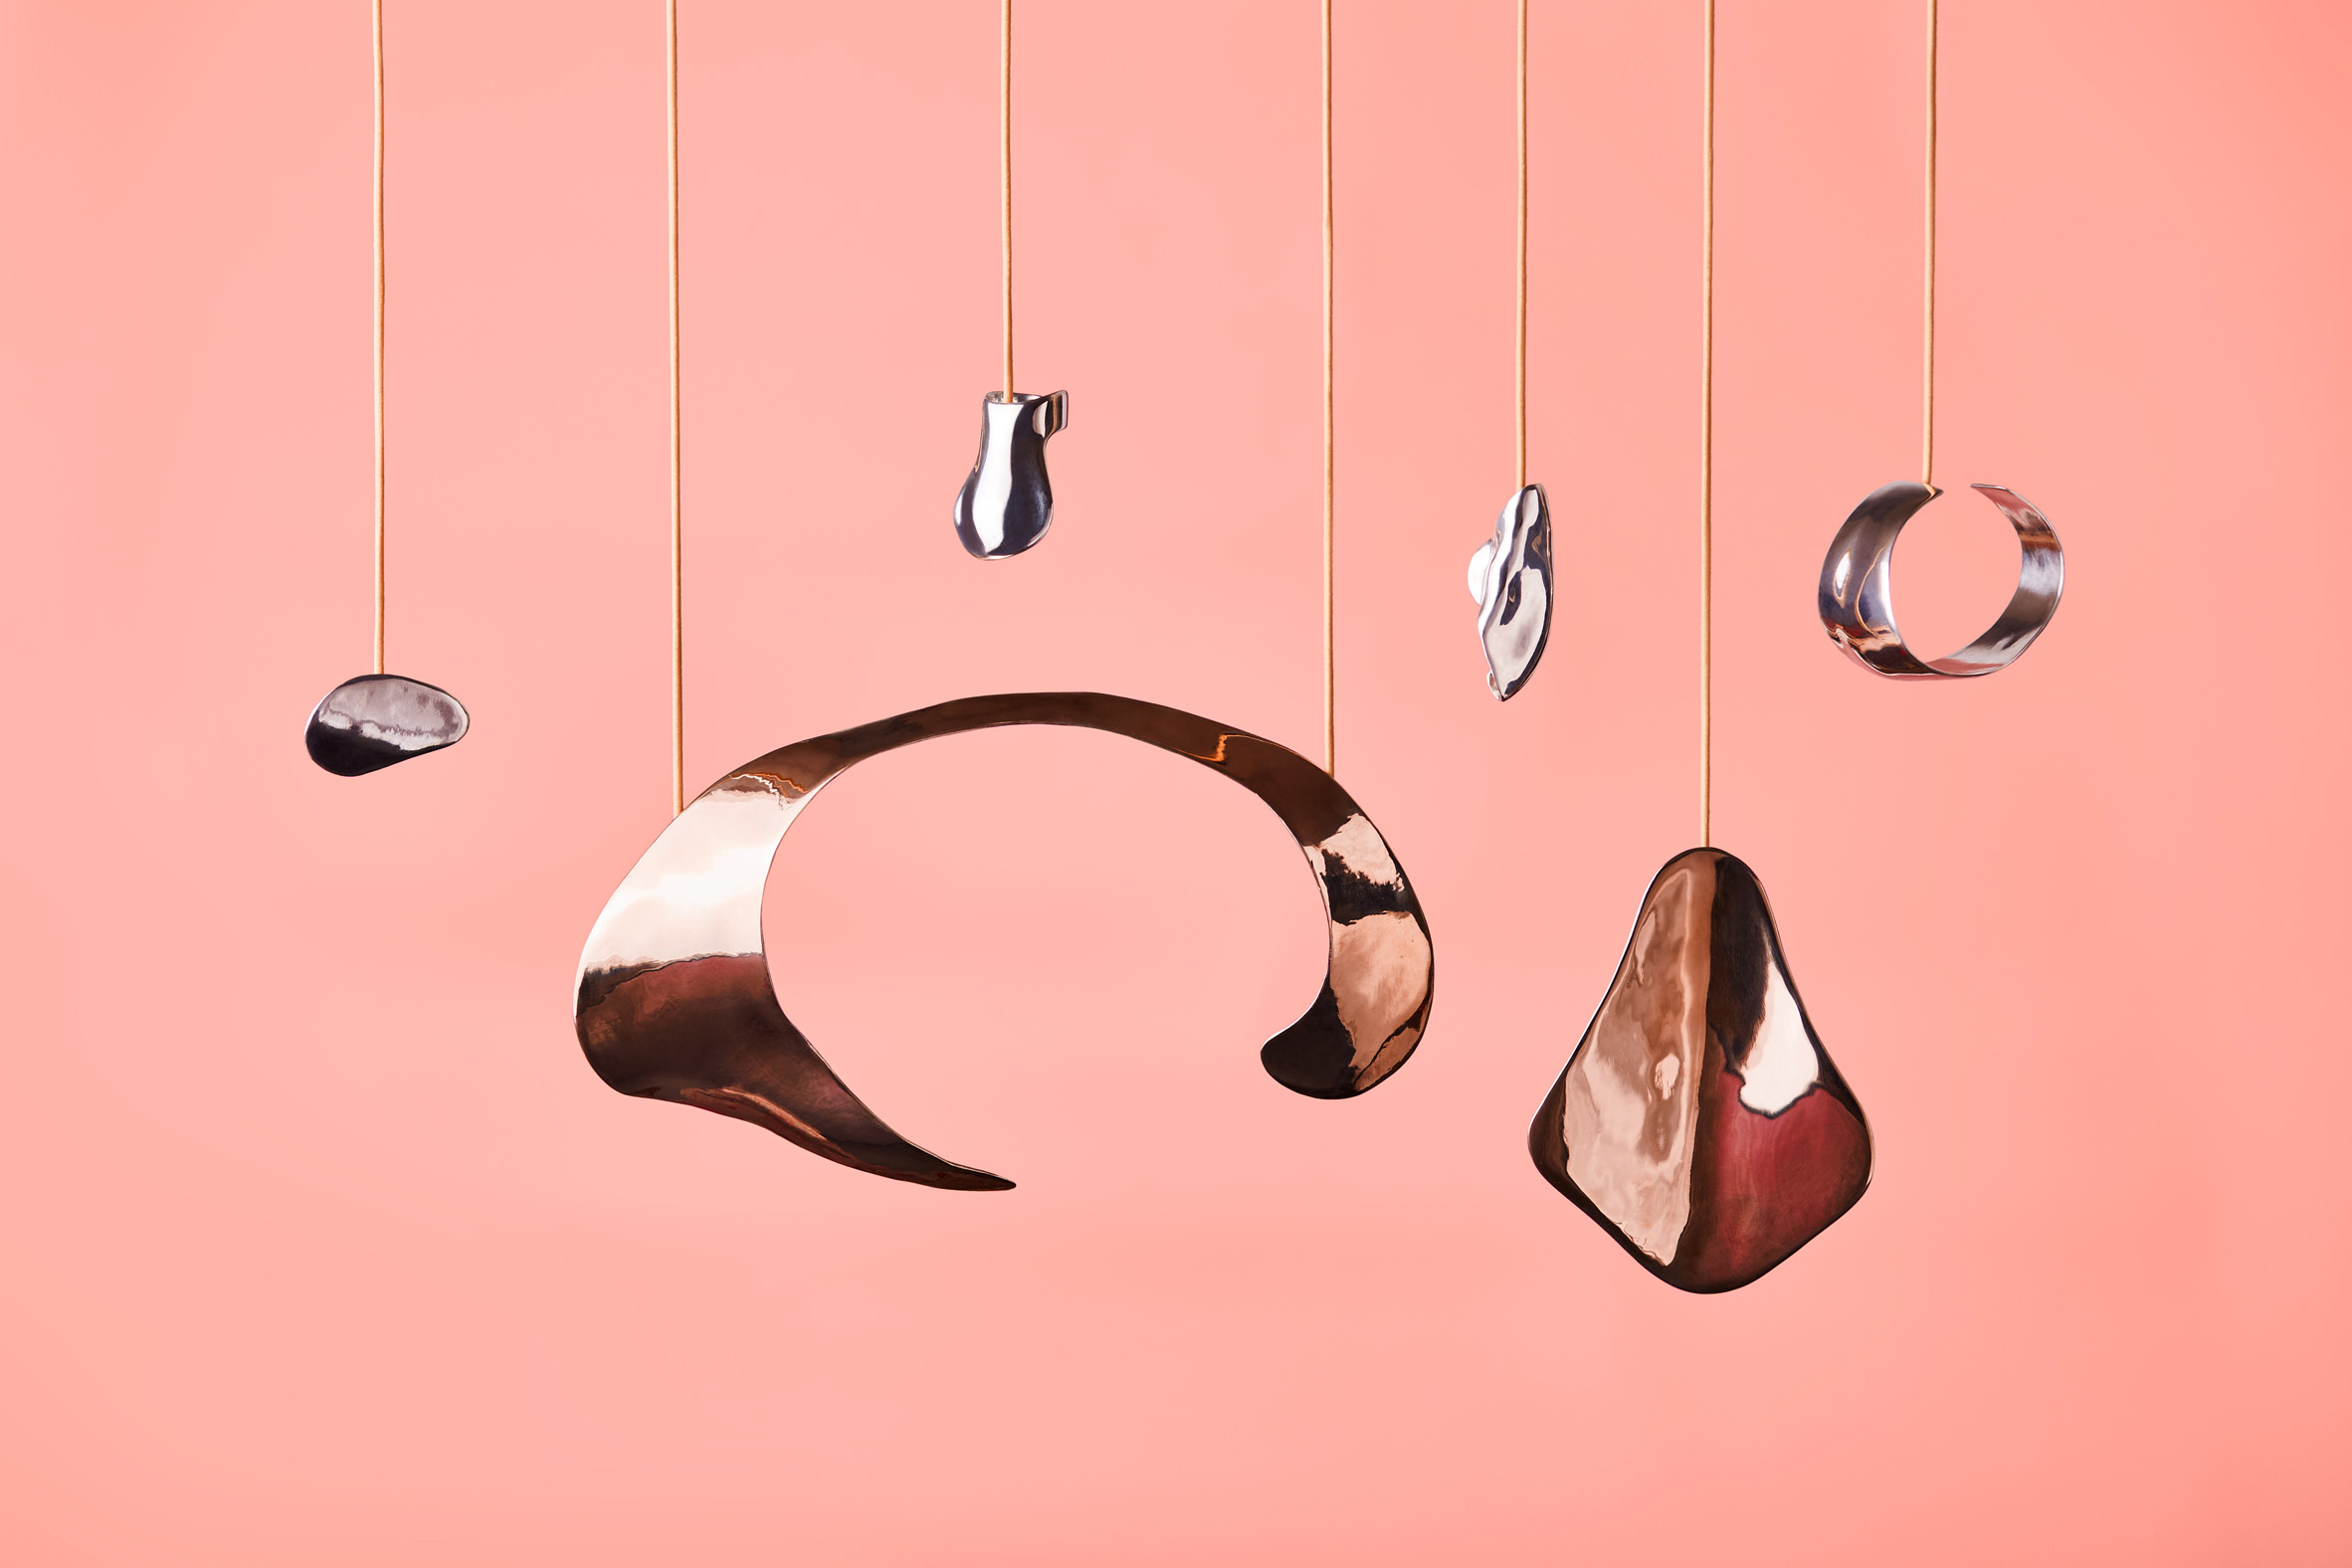 continuation-embracing-touch-series-design-fashion-jewellery_dezeen_2364_col_10.jpg